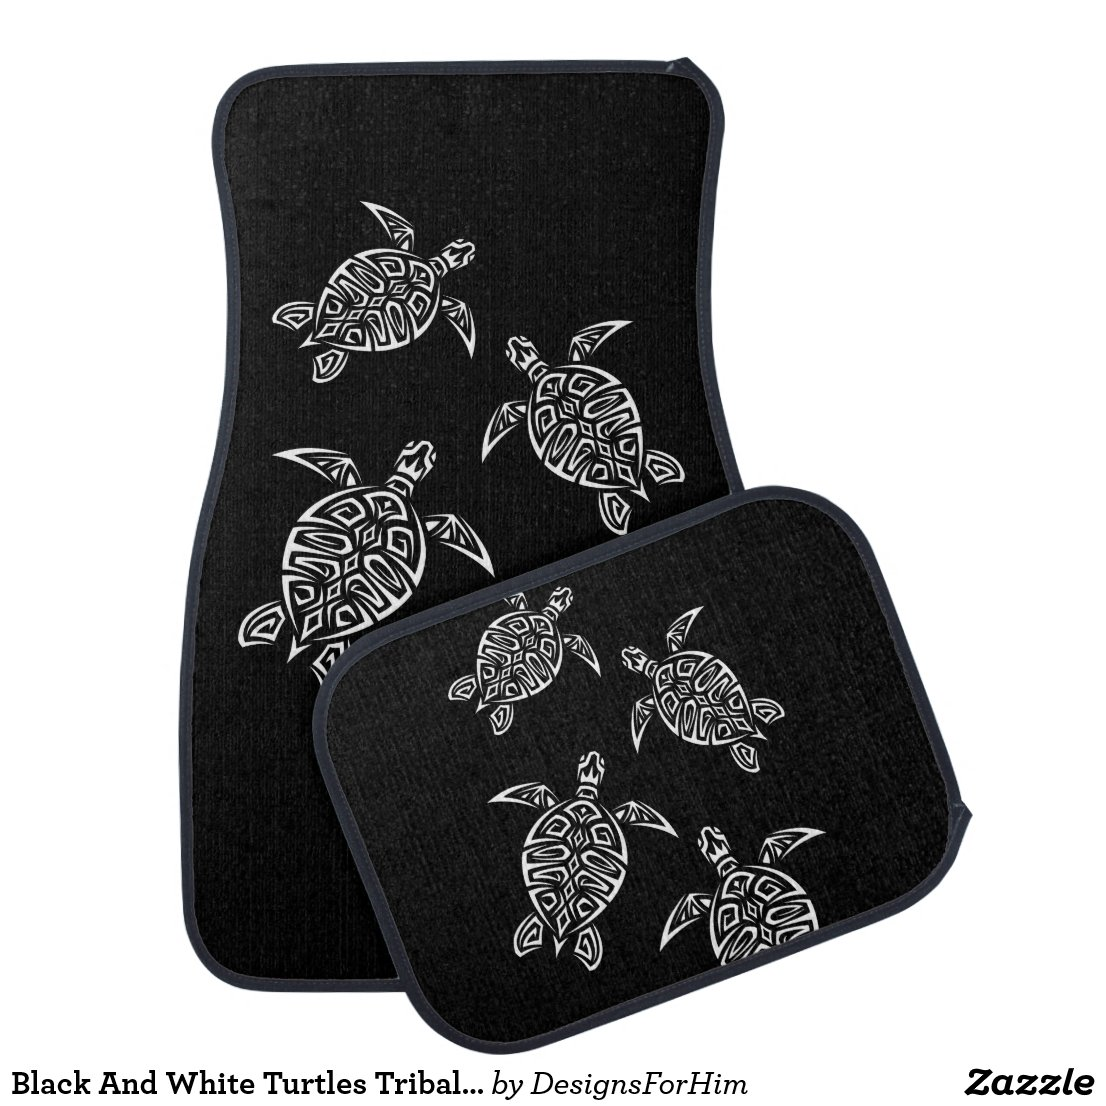 Black And White Turtles Triabal Tattoo Animal Car Floor Mat